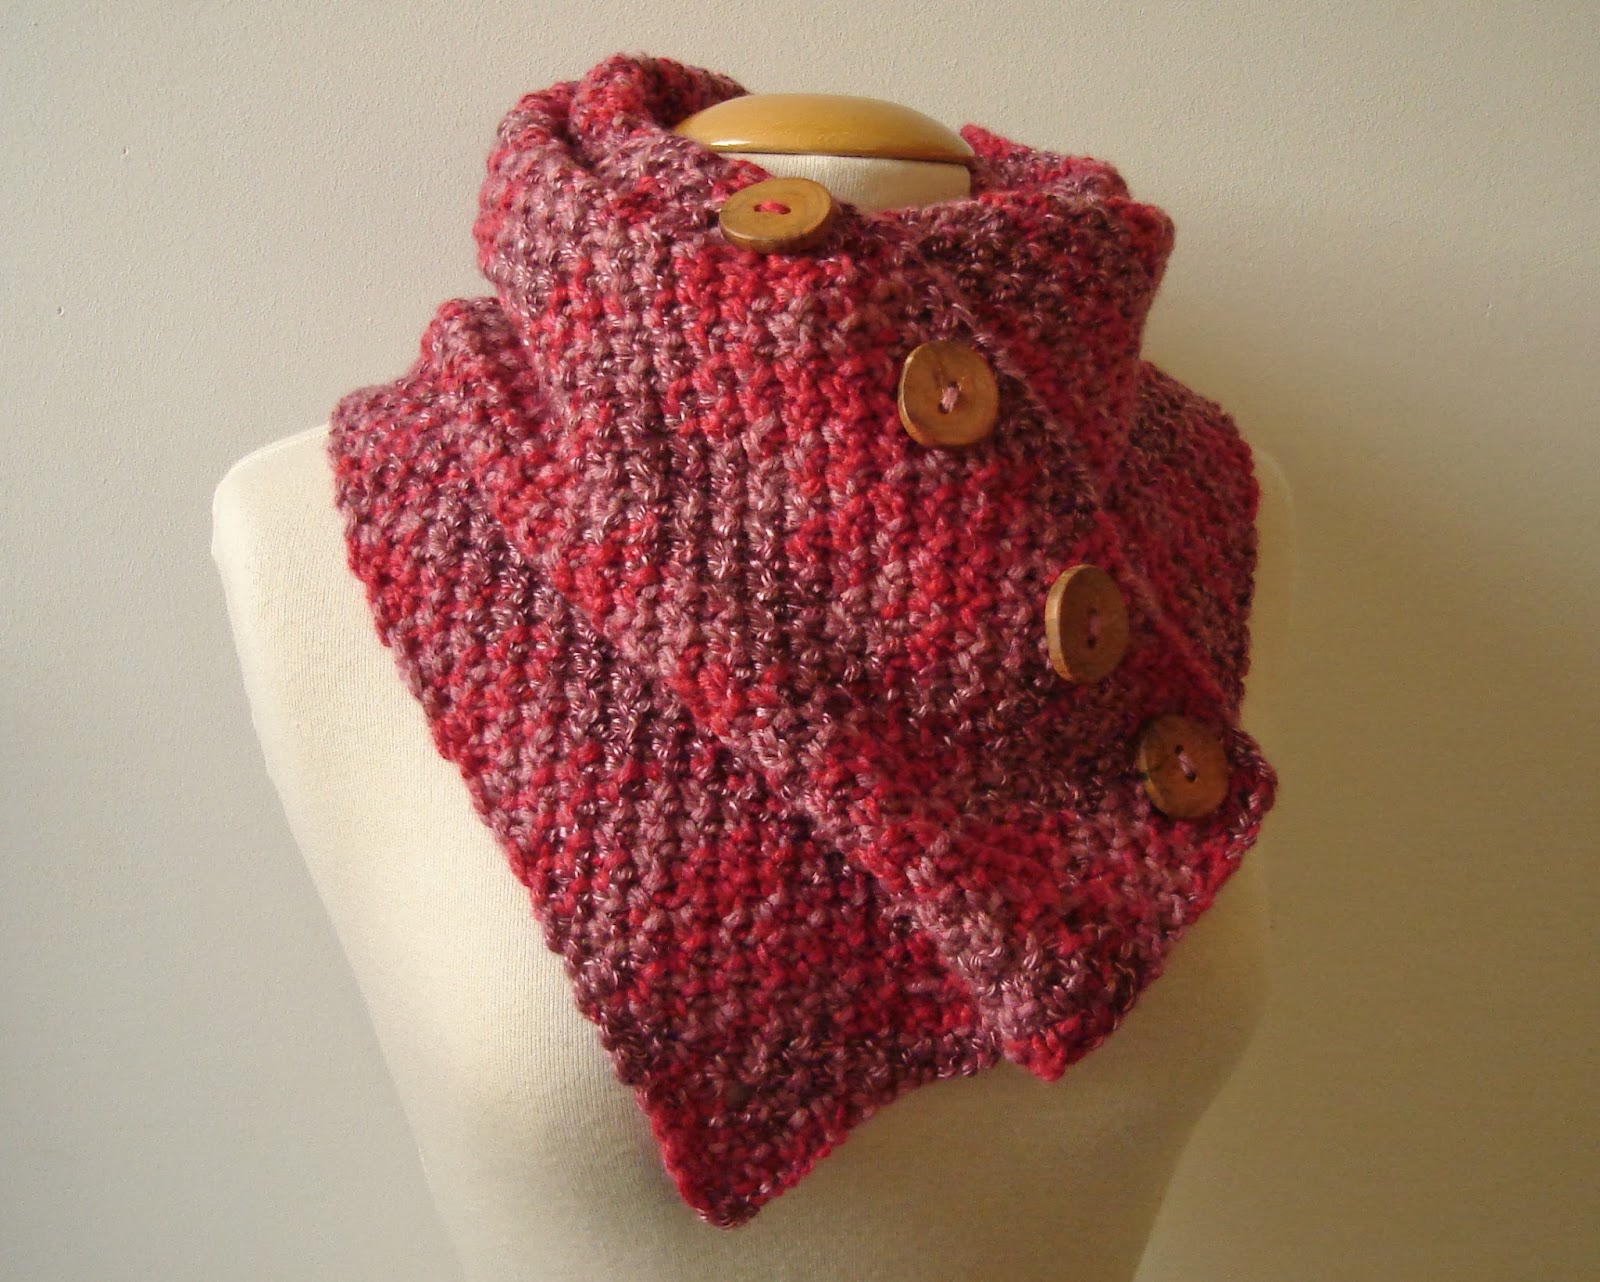 Knitting Pattern For Snood Scarf : HandmadeHandsome, handmade items and knitting patterns ...